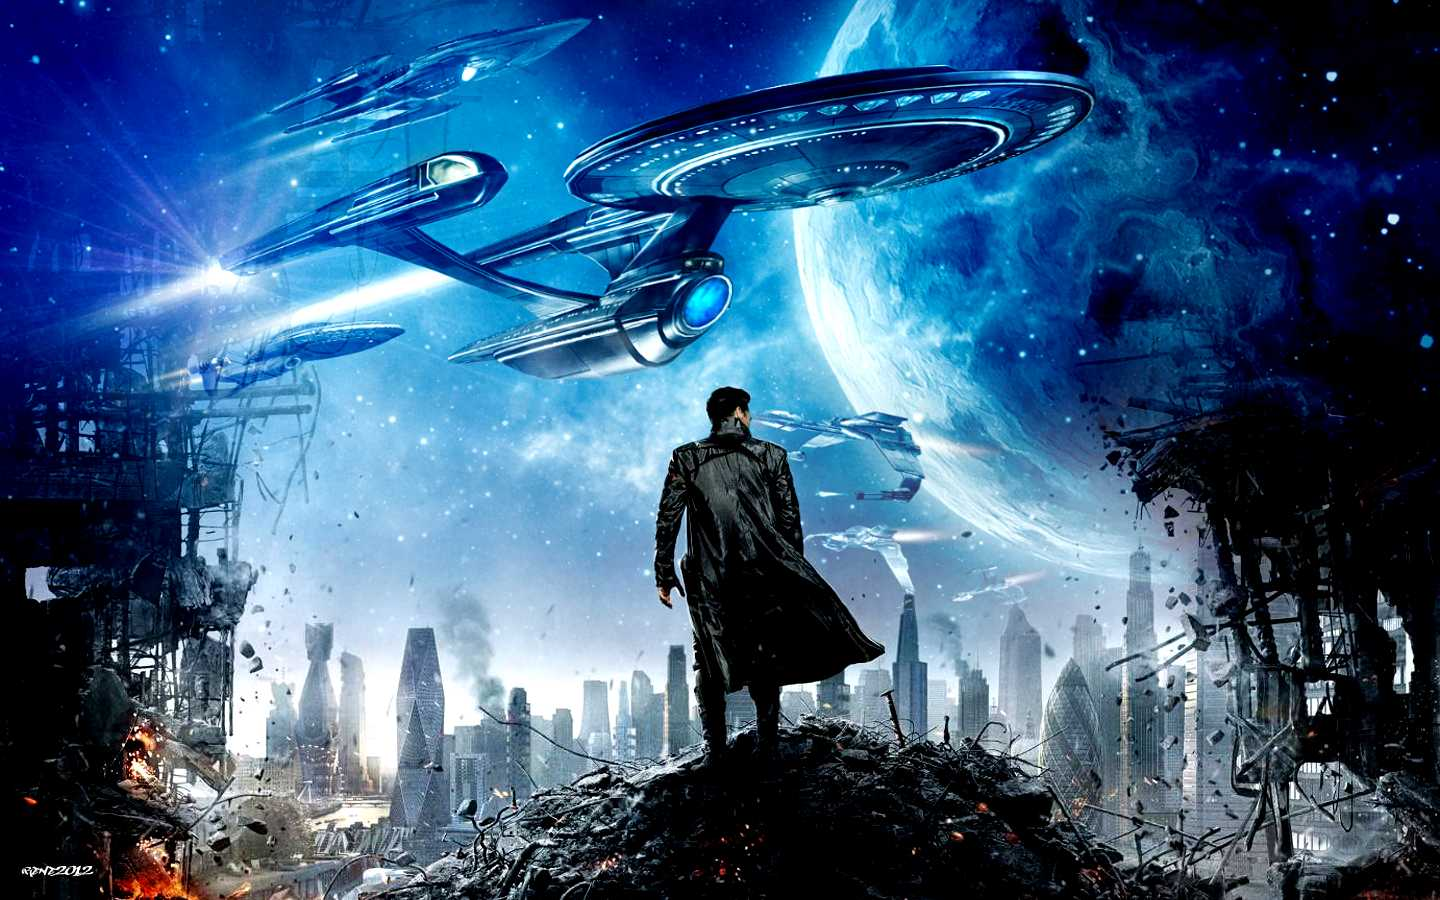 Quick Thoughts About Underrated Movies: Star Trek Into Darkness | Star Trek Into Darkness